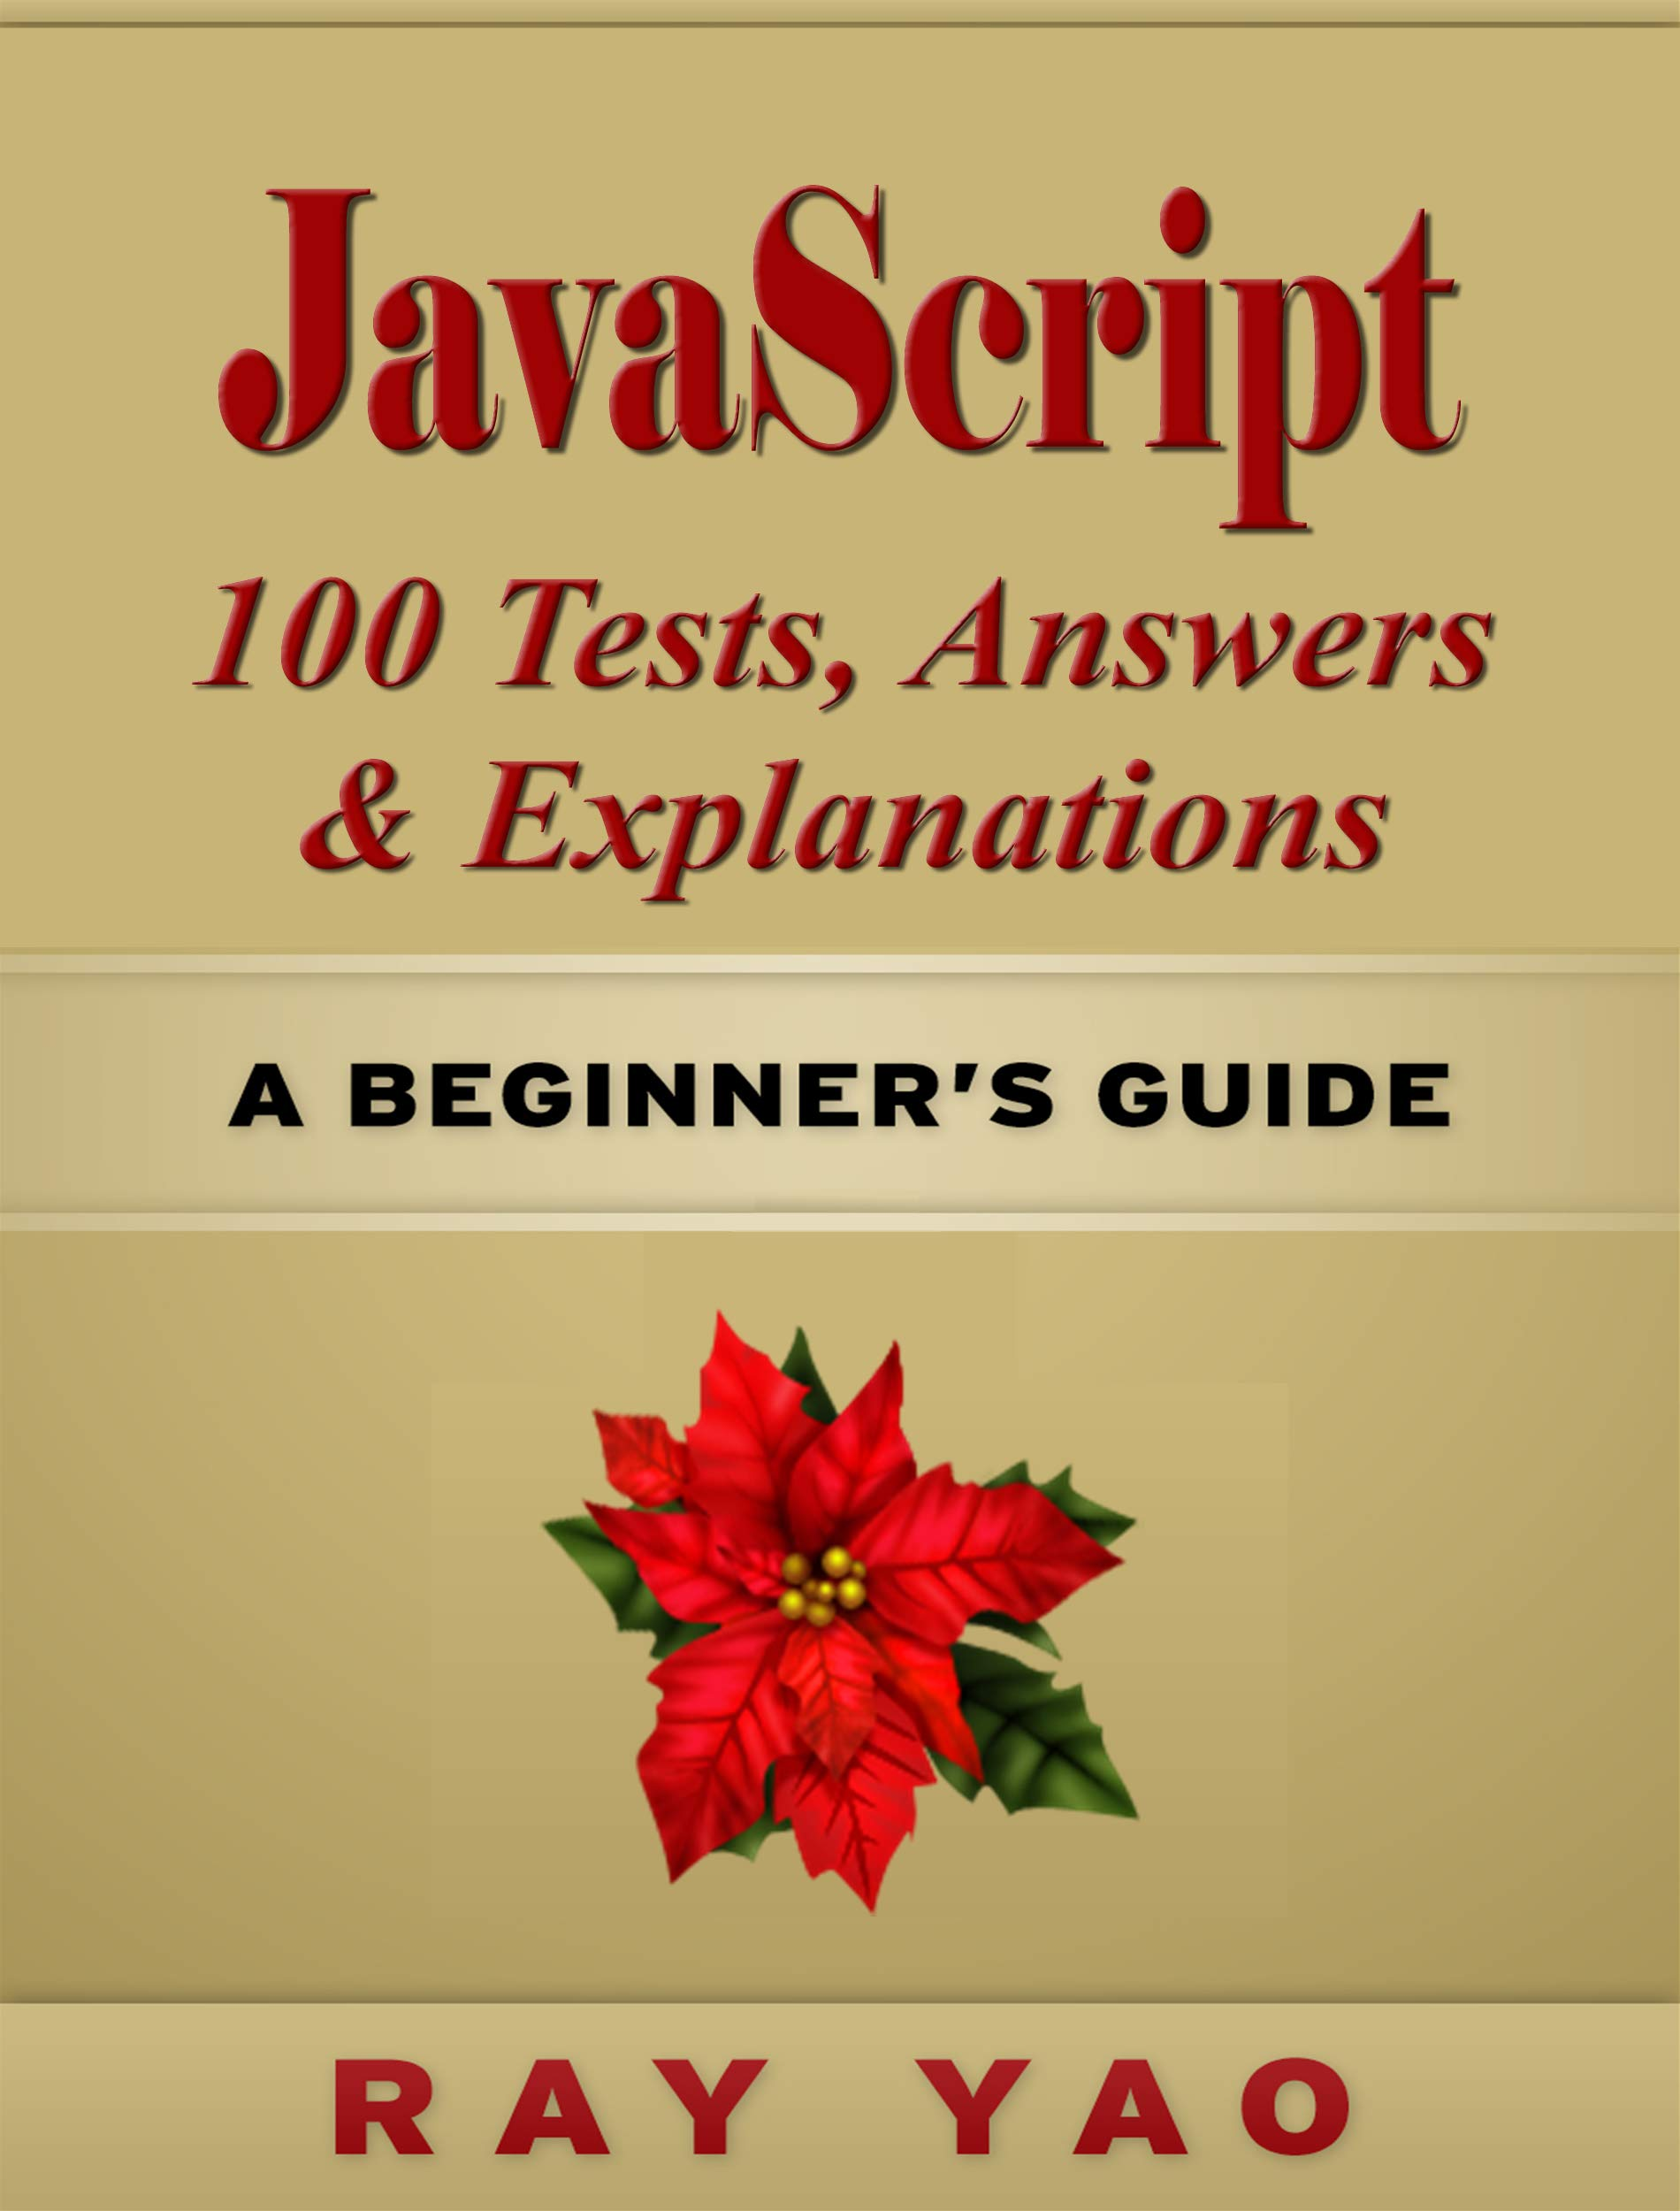 JavaScript 100 Tests, Answers & Explanations